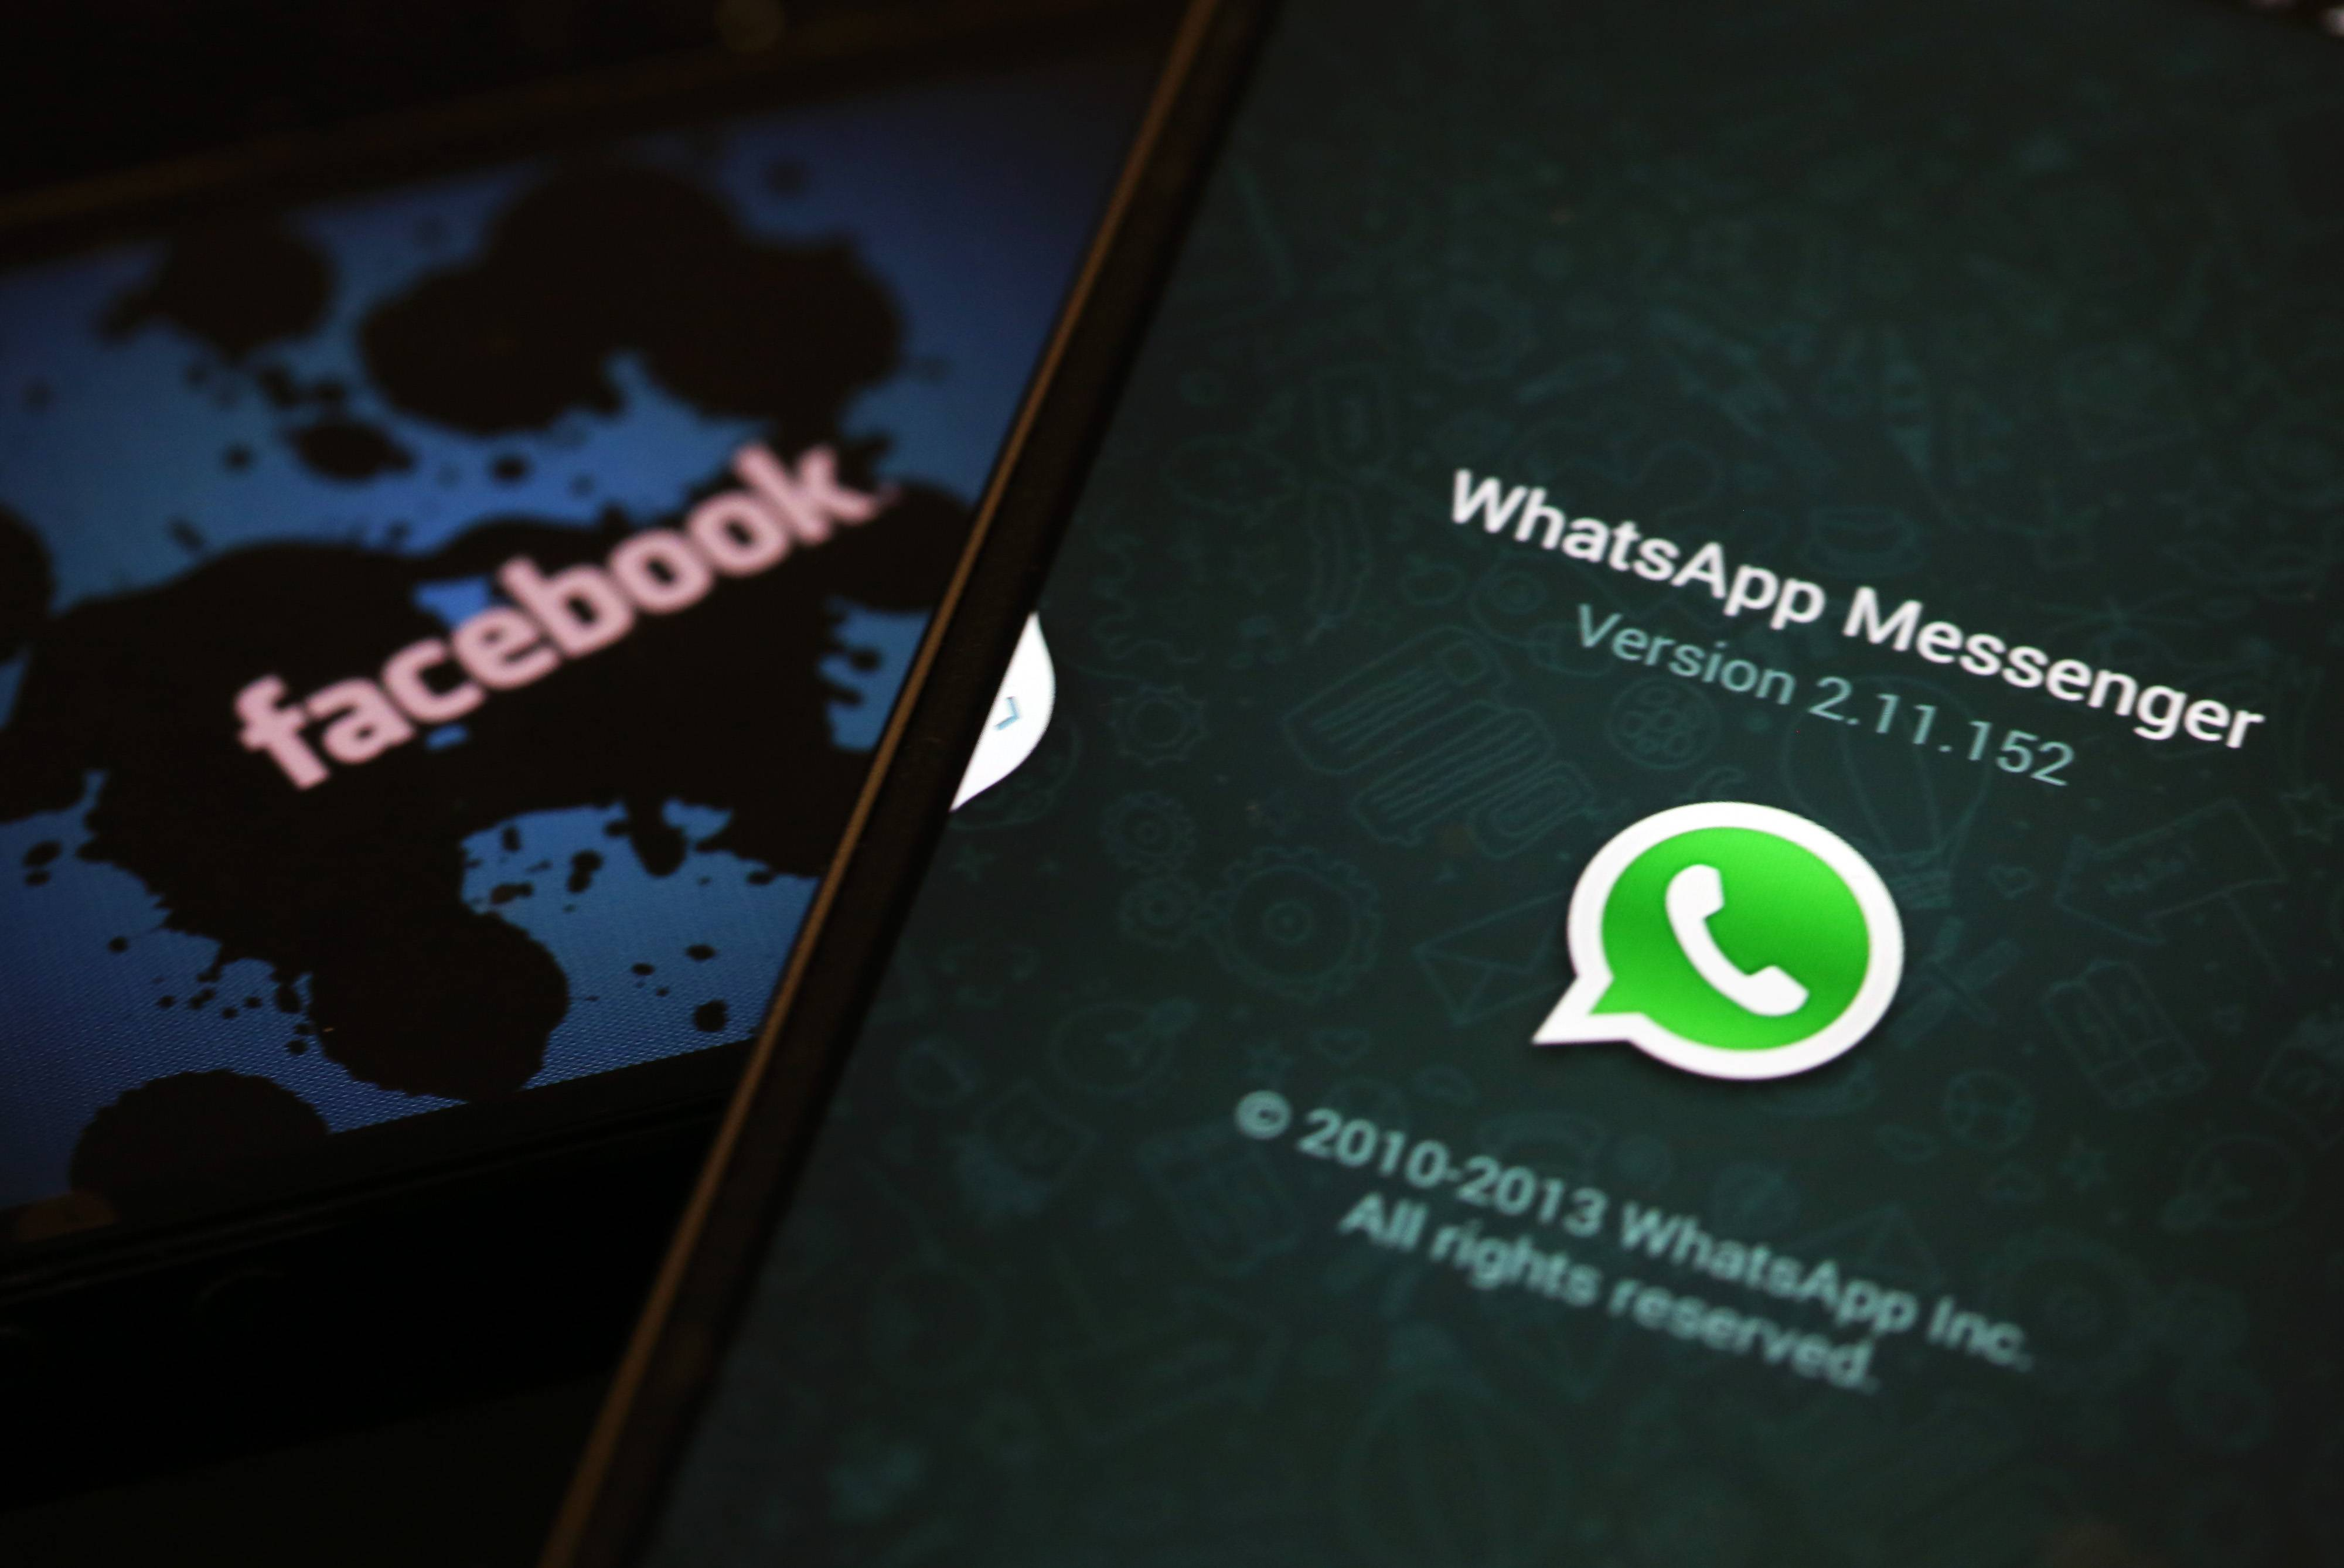 The WhatsApp Inc. mobile-messaging application WhatsApp and a Facebook Inc. logo are displayed on an the screens of mobile handsets.